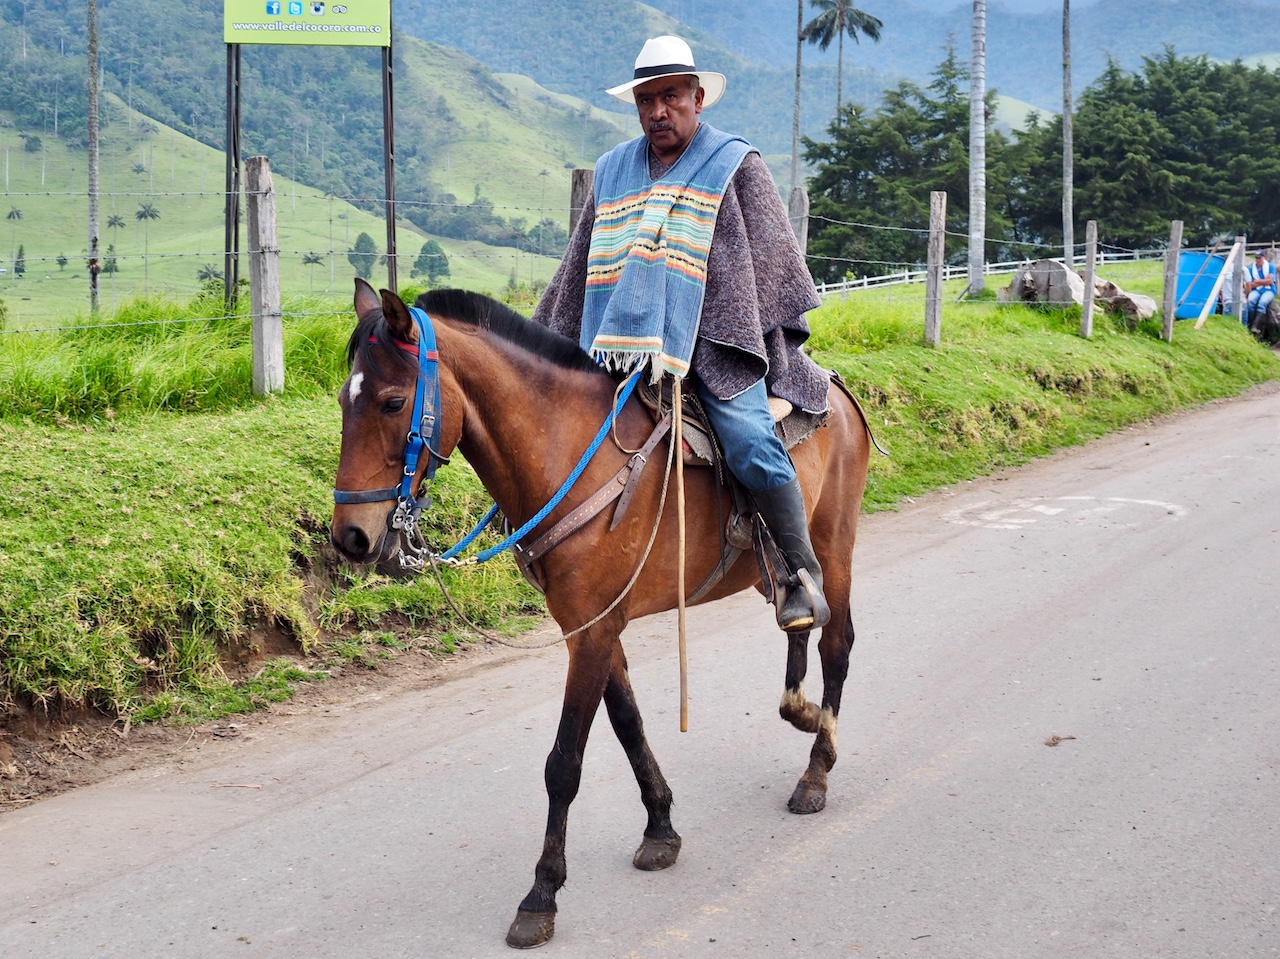 """There is always the option to get there the local way! This guy looks annoyed, but greeted us with a smile and a """"buenos dias"""" when he passed."""